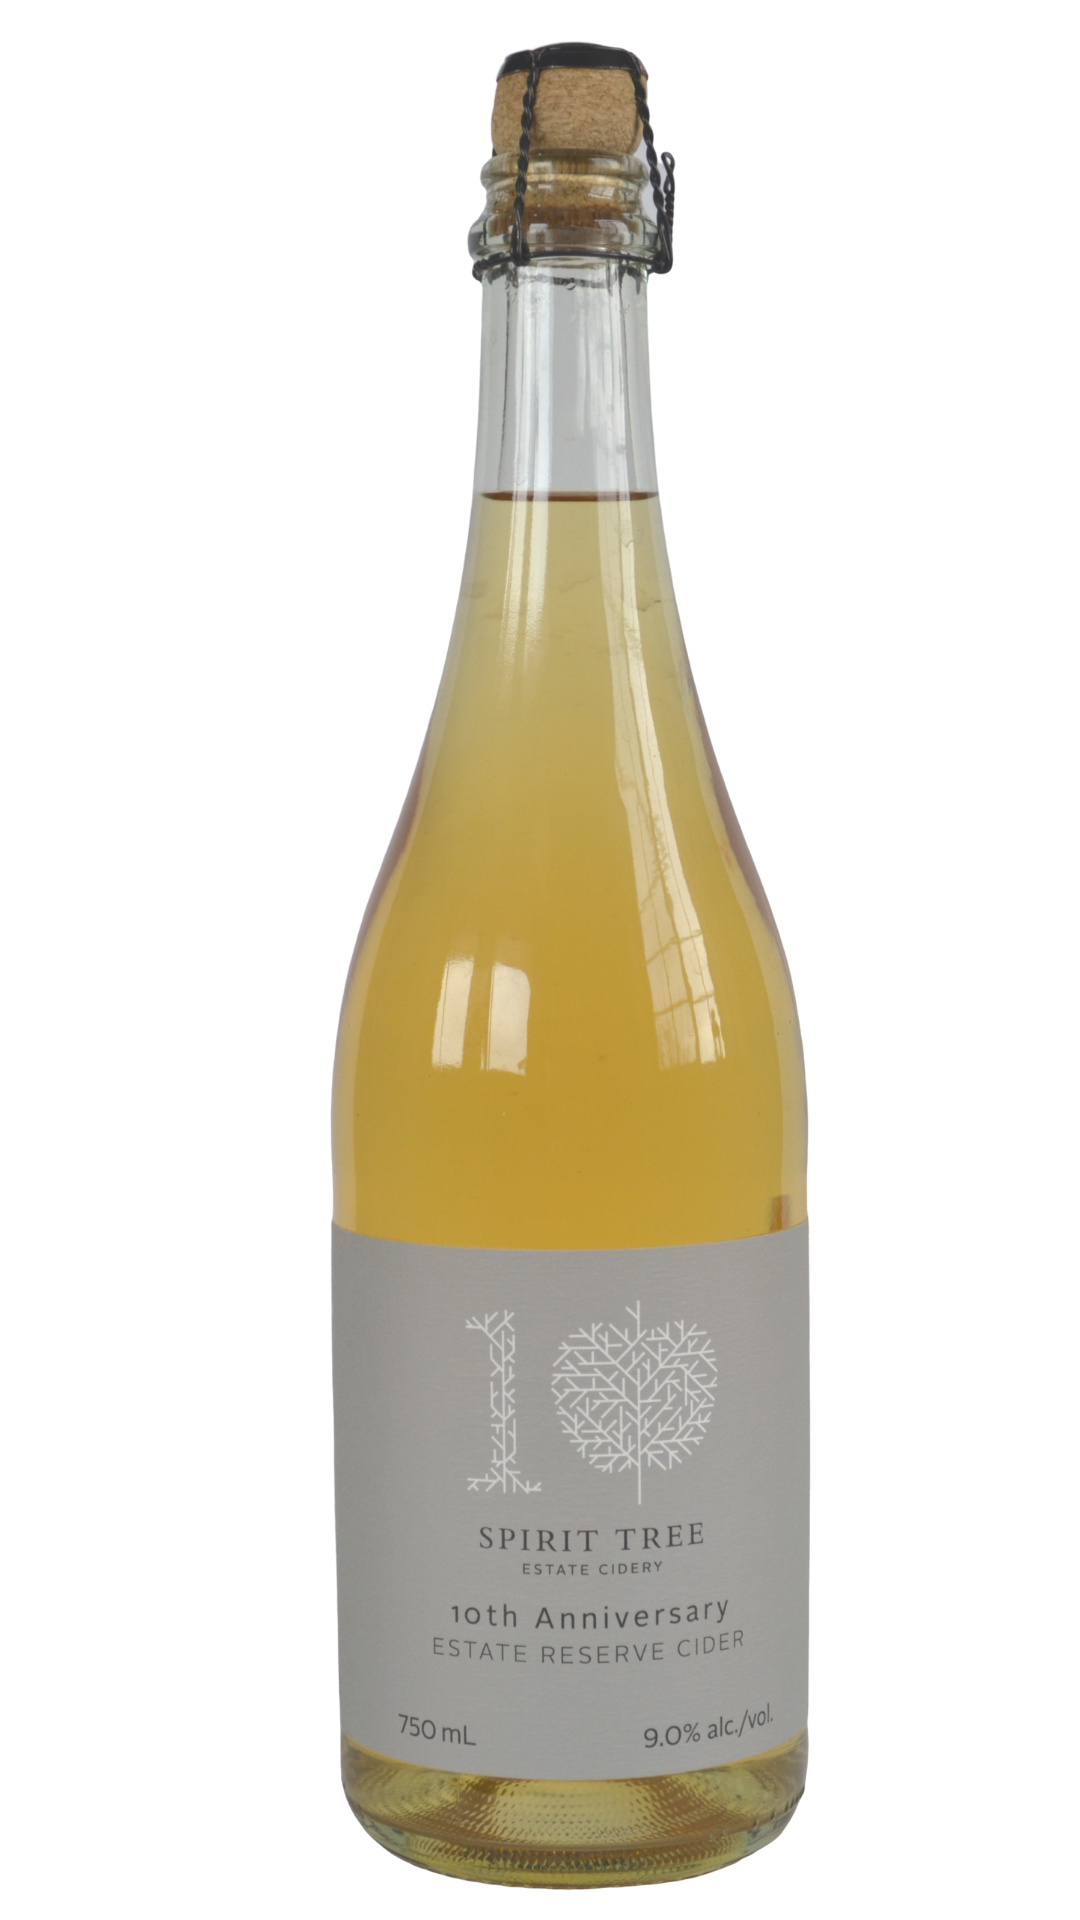 10th Anniversary Cider